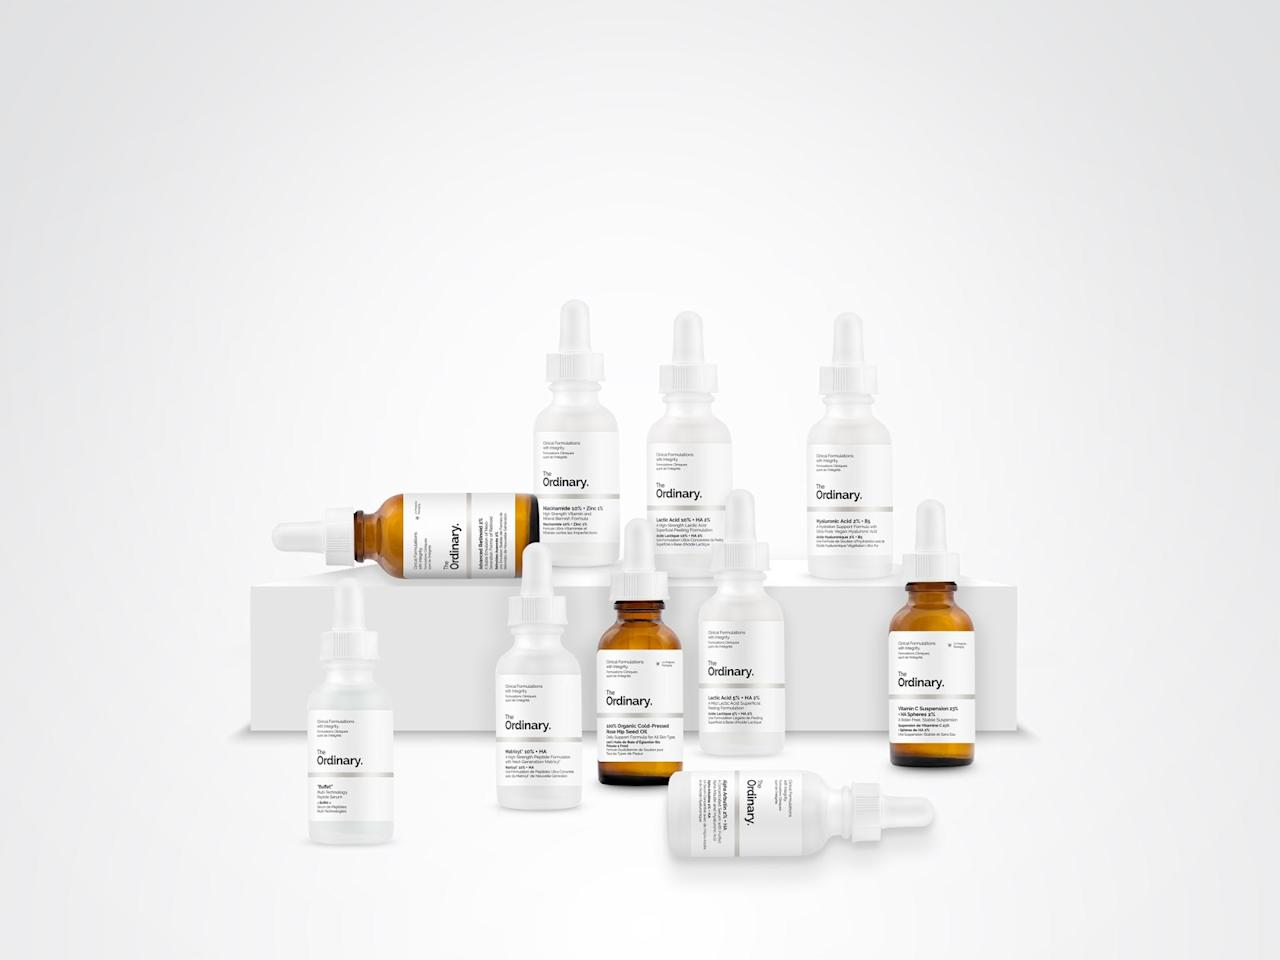 "<p>The price points at The Ordinary are hard to beat and the quality is on par with high-end skincare brands. Both men and women will love receiving a slew of The Ordinary goodies that won't run over $40. When we say, ""won't break the bank,"" we mean retinol serums start at $3 with the priciest items clocking in at $18.<br /><strong><a rel=""nofollow"" href=""https://theordinary.com/default?ccm=6afb414ca0a748bd85ed7ead6c4e6729f133993f2fd49d2697d9aa1f3700dc05f70102cb1d00da802a8fe86a4f7a904b2cc58b019d79610ab89b7e00b33f328bc753a4096d6833cfdfd104393f7b6d2ef60725dbd75bf59bf1597b57999412f45d7c6b0ccdadeca071038790a2b5baac4cb1030ea3820e17babcf61c131d830bd6d66752f264fc0b2edeaa793b1ccff2&ccvis=1"">SHOP IT: Deciem, $3-$18</a></strong> </p>"